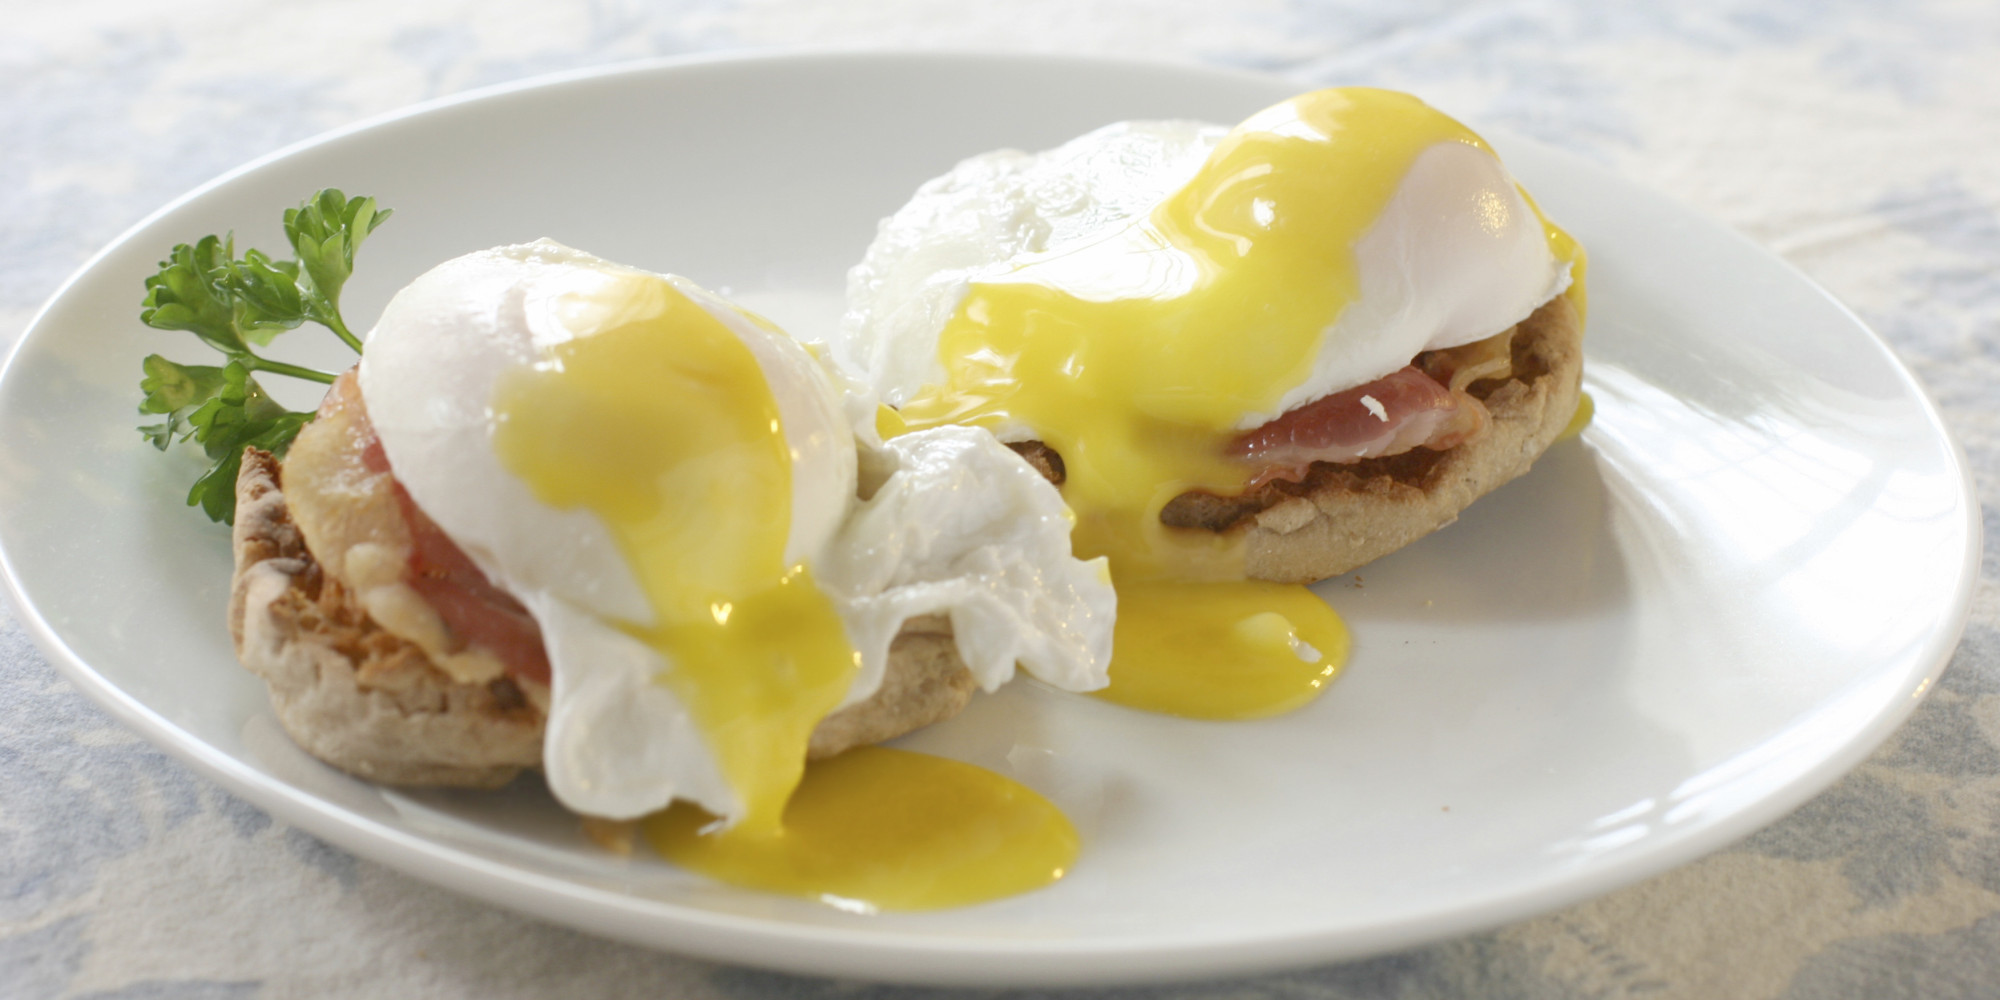 Hollandaise Sauce Recipes To Entirely Remake Your Brunch (Or Dinner)